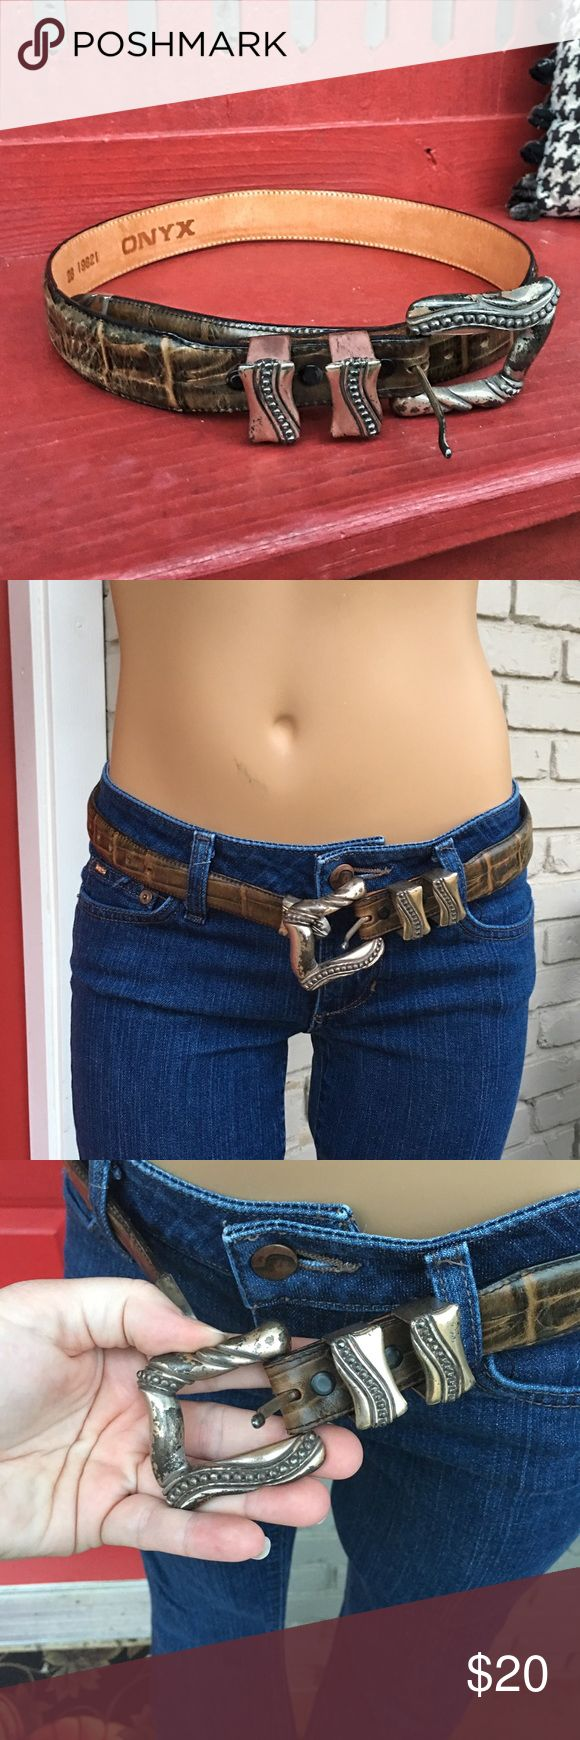 ONYX tan leather belt with silver tone hardware Gorgeous belt but does have some flaws to hardware. Fits like a Brighton size Small. (XS/S). Check out my other belts!! Onyx Accessories Belts